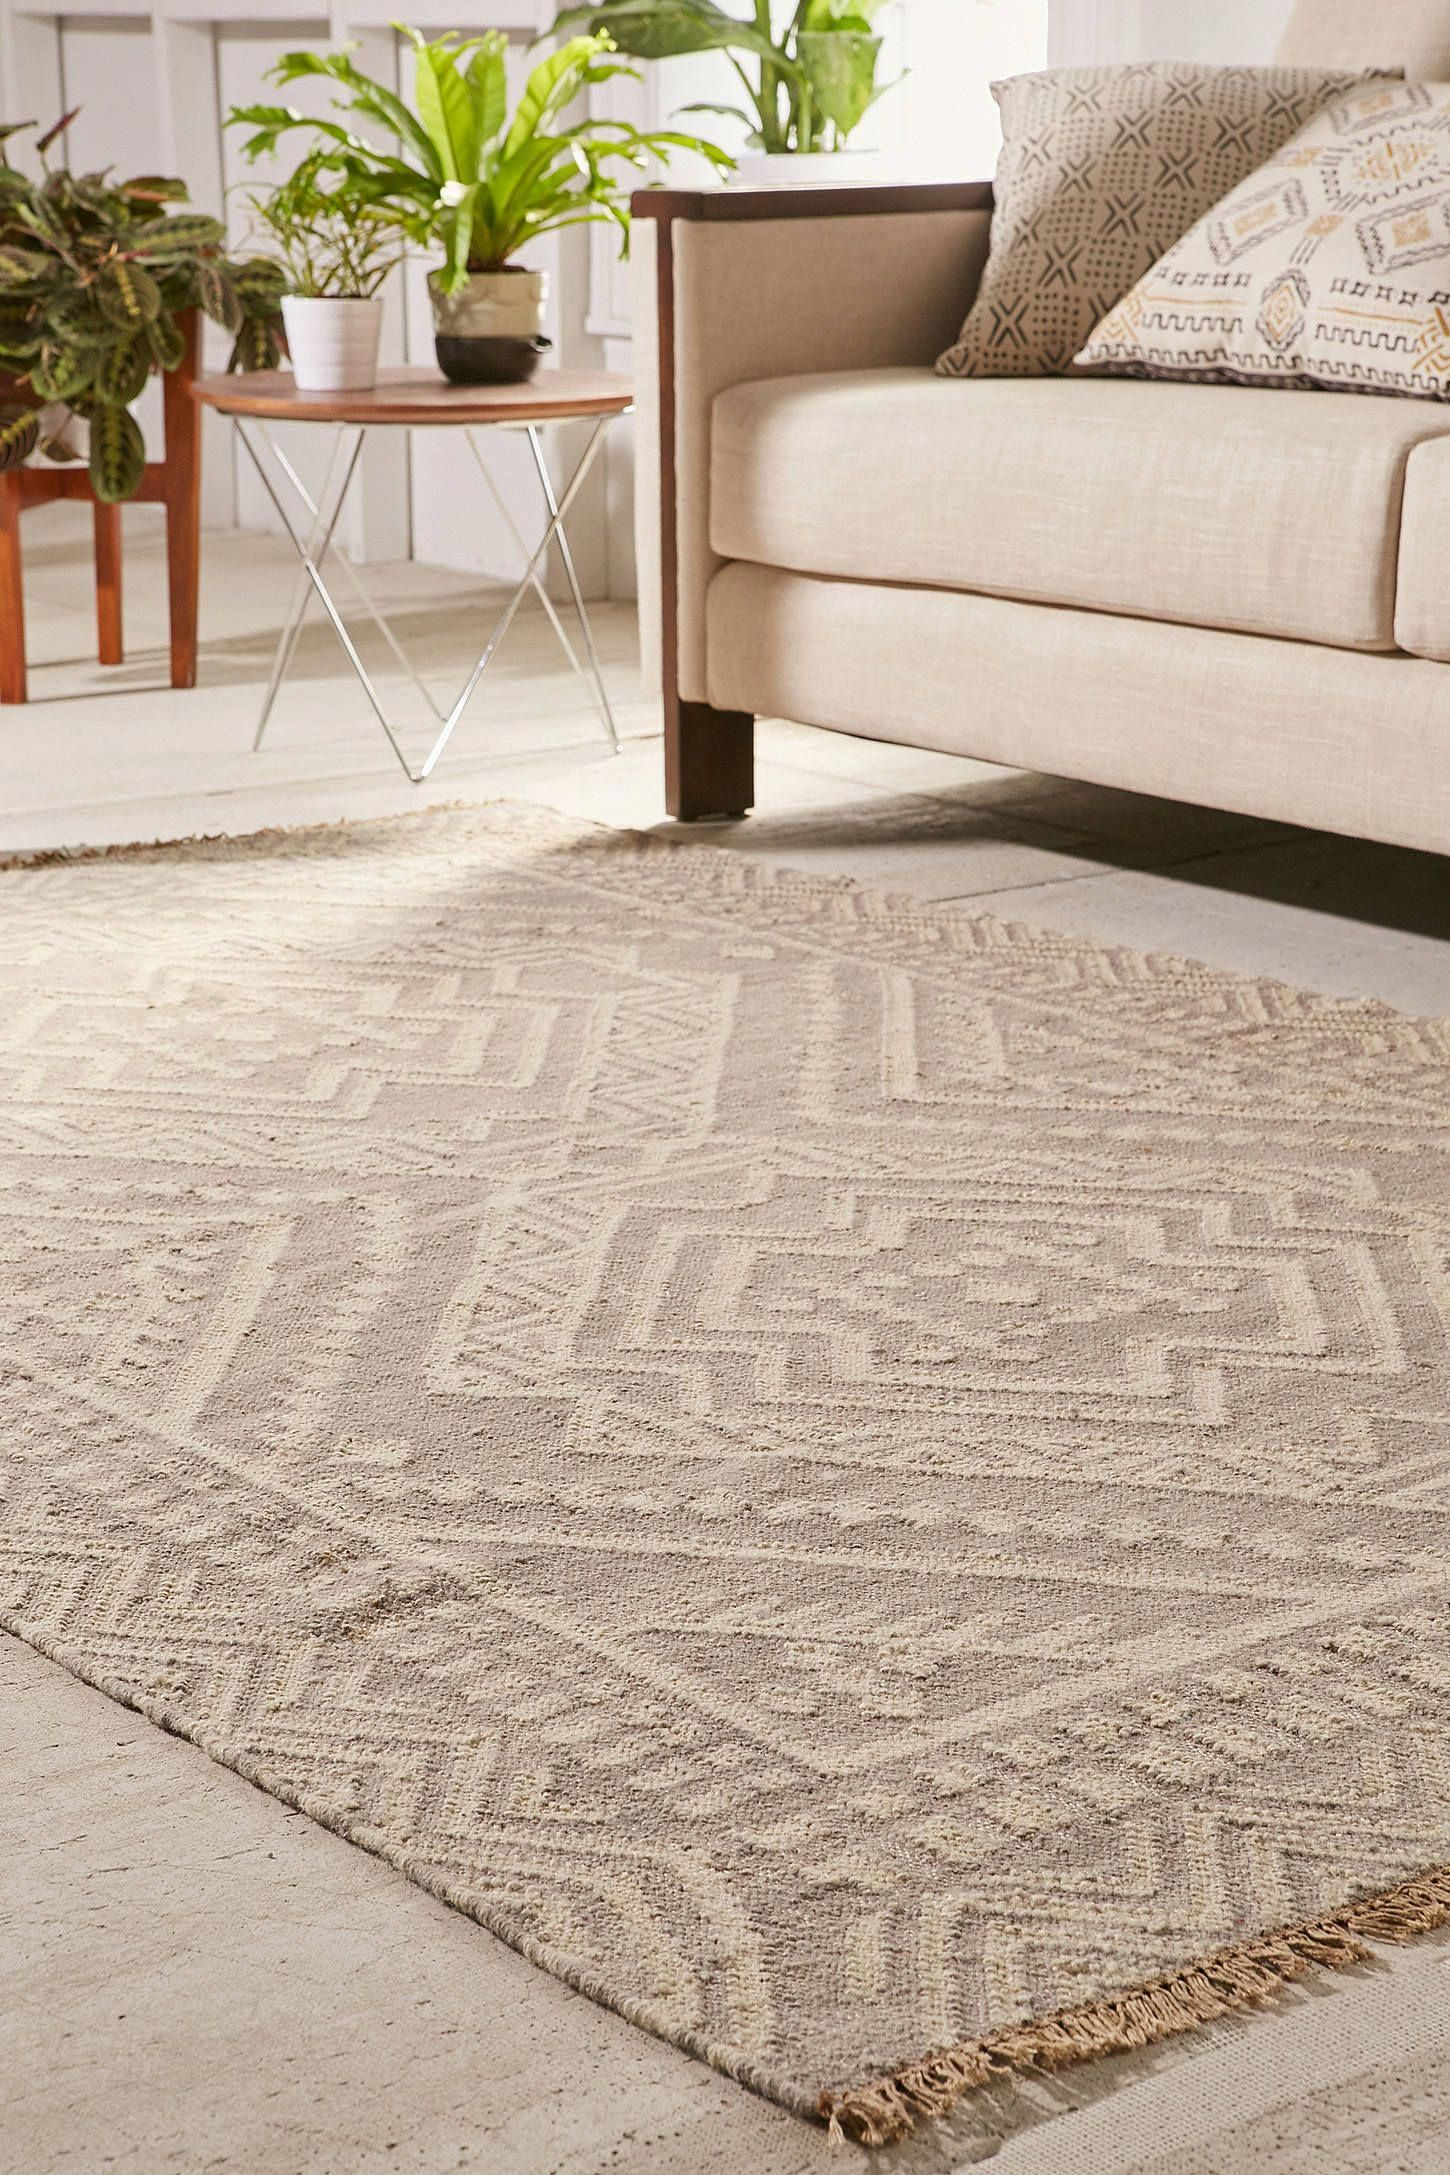 Argos Clearance Carpet Runners CarpetRunnersWithBorders